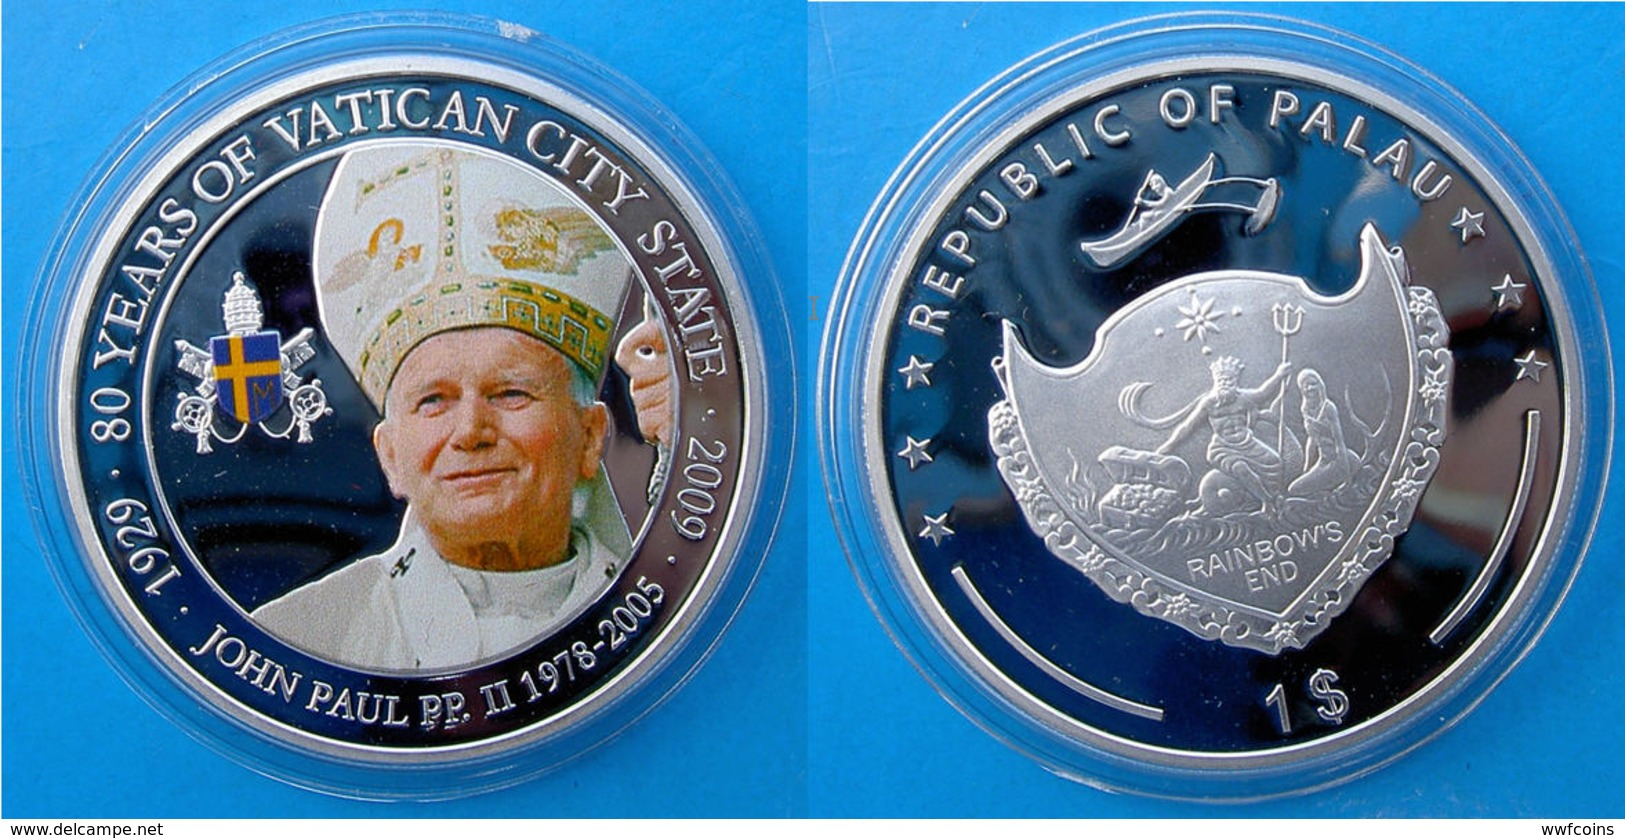 PALAU 1 $ 2009 COPPER SILVER PLATED PROOF 80 Y VATICAN CITY STATE POPE JOHN PAUL II WOJTYLA GIOVANNI PAOLO I WEIGHT 26g - Palau